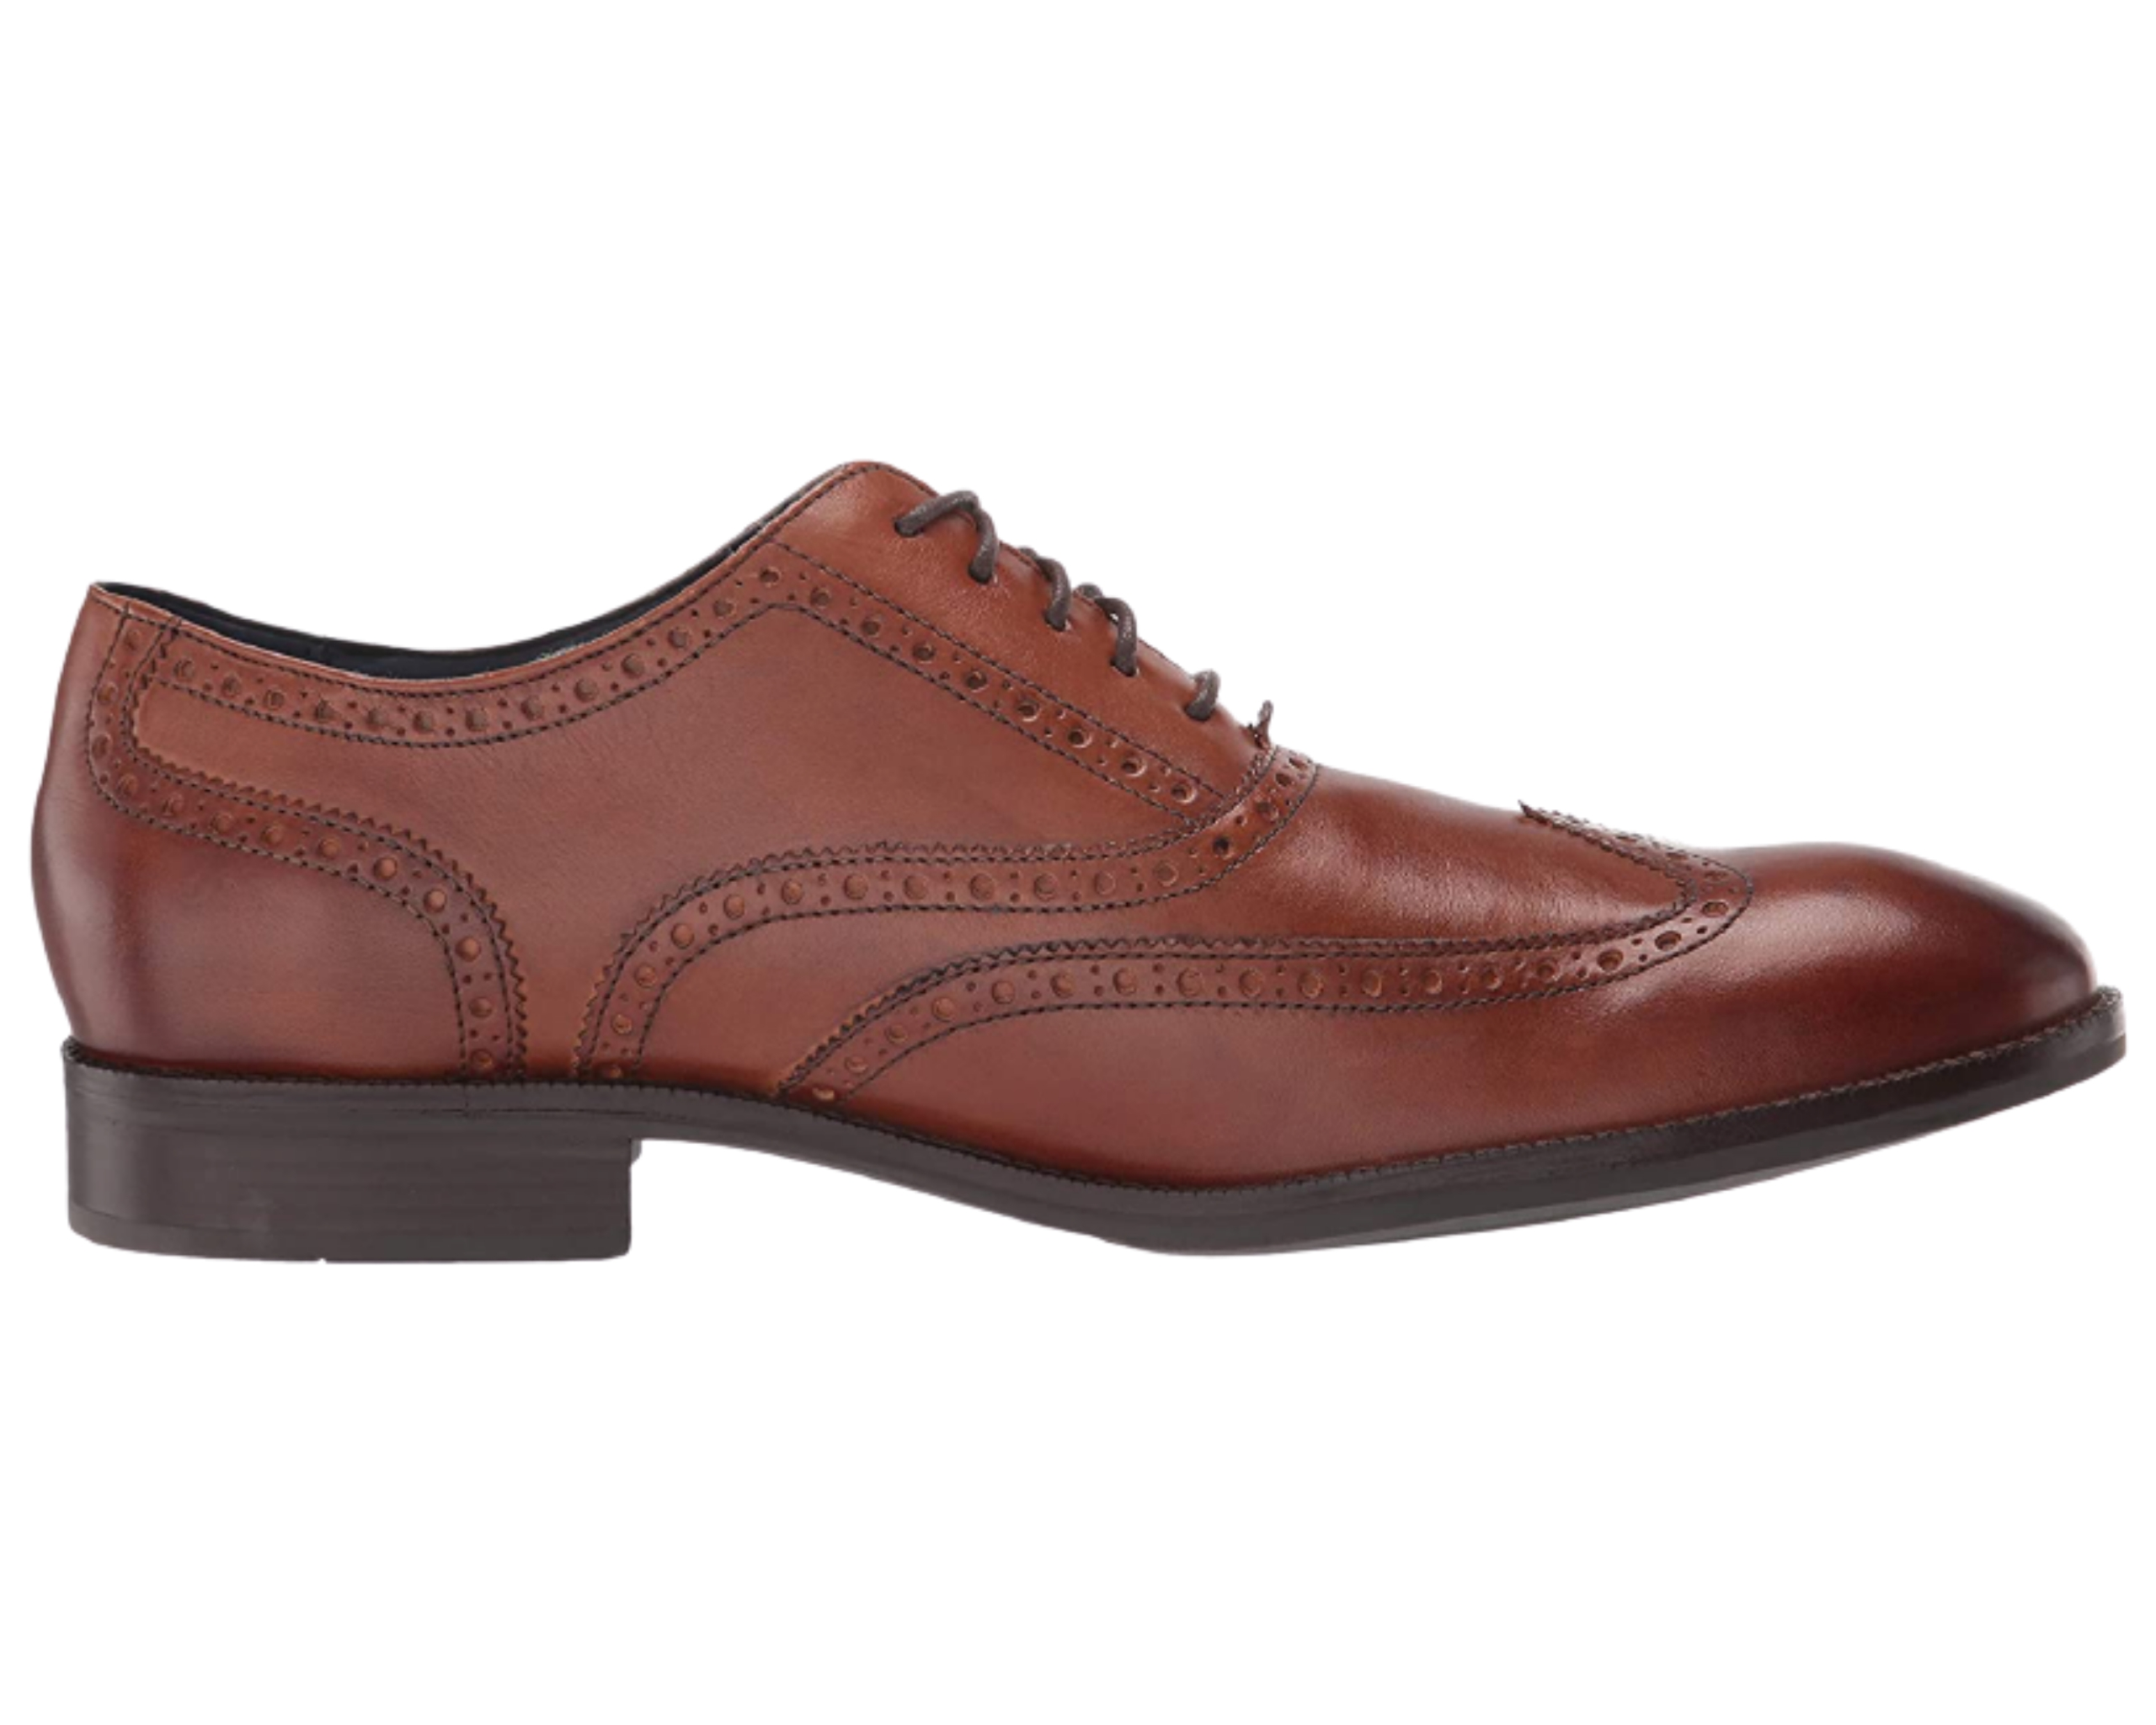 Best brown wingtip shoes for men